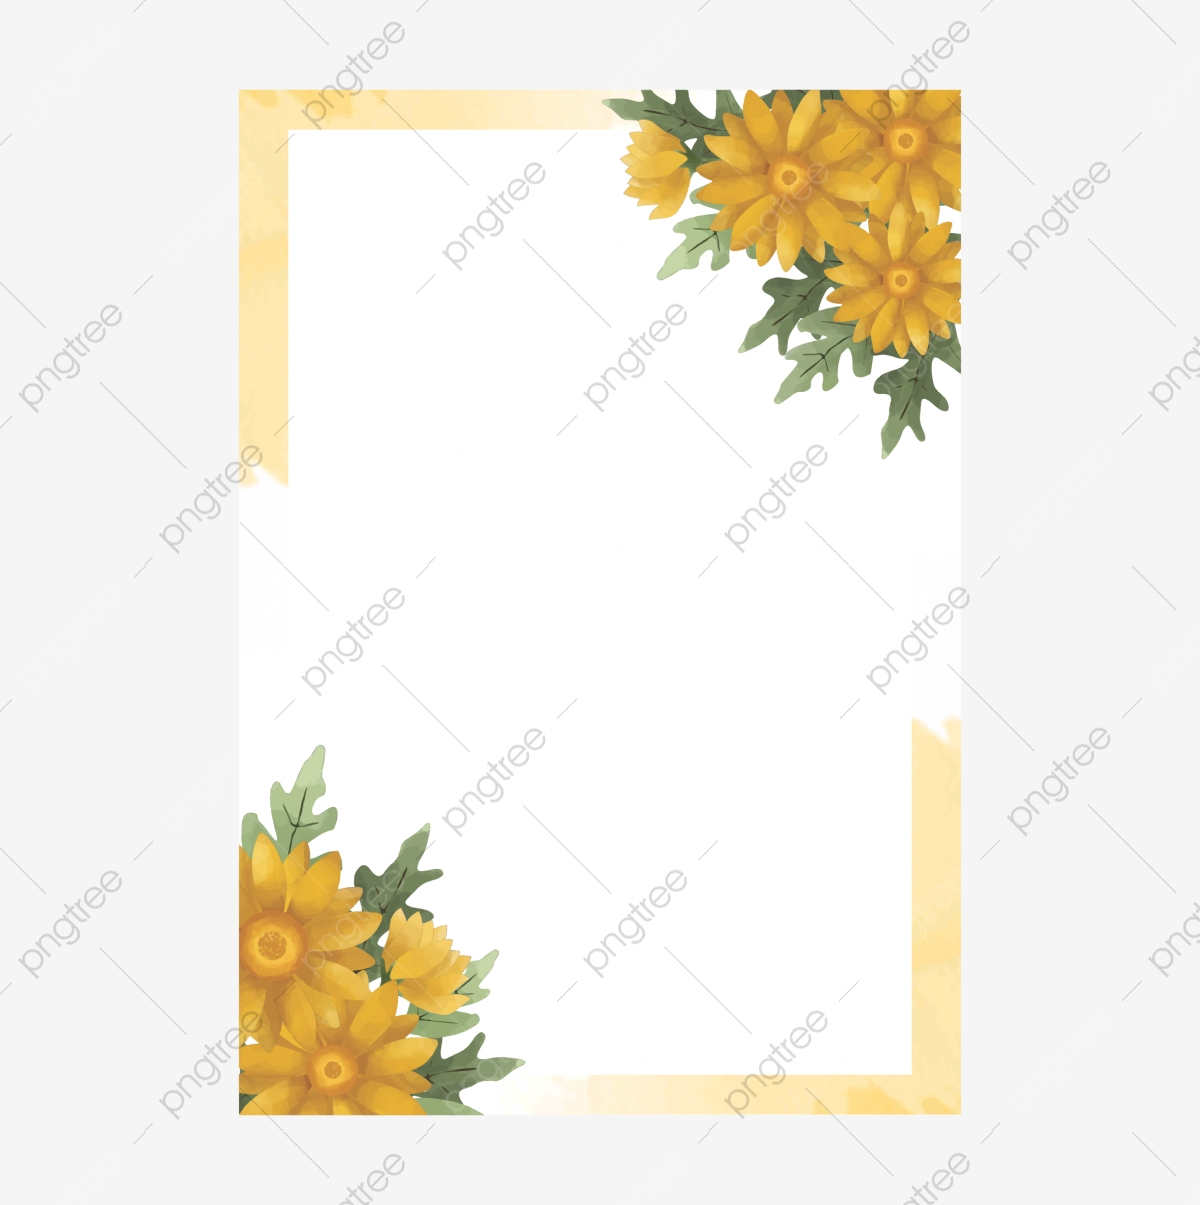 https pngtree com freepng sunflower style watercolor wedding invitation card template 5225436 html